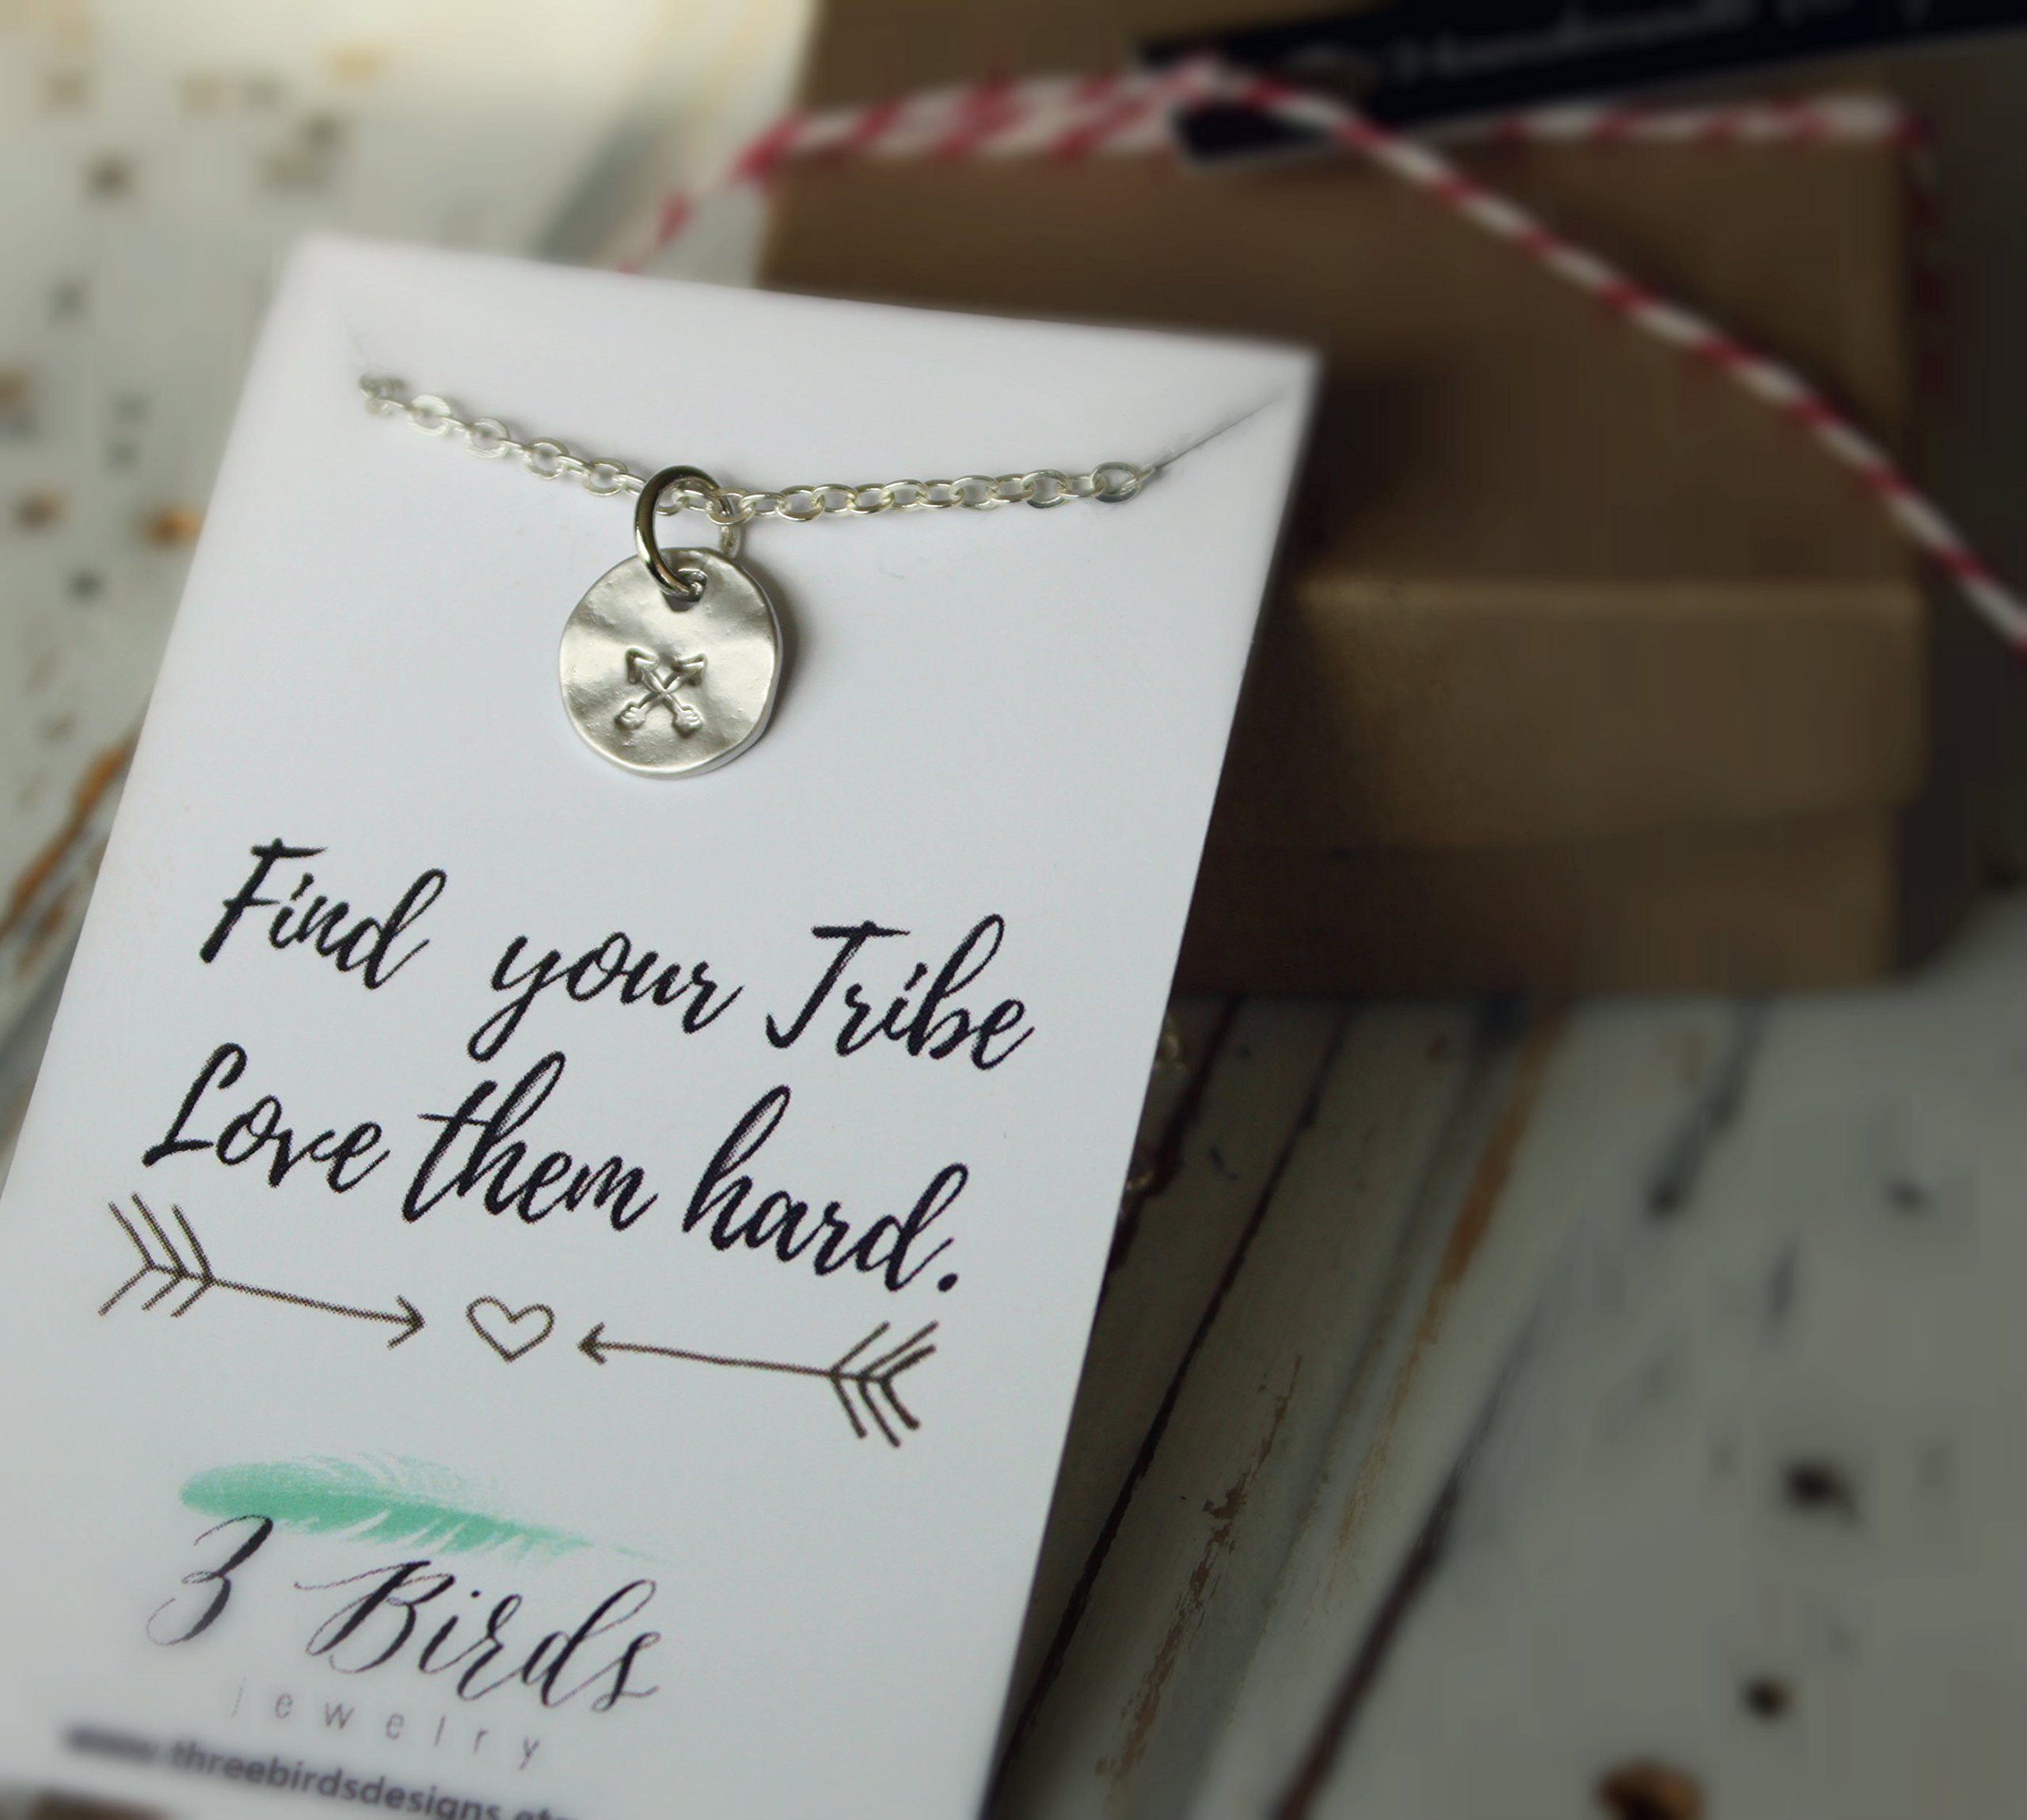 ON SALE Tribe Best Friend Necklace. Double Arrow. Silver, Gold, and Rose Gold. Multiples Discount. Friendship Necklace. Find your tribe. Love them hard.